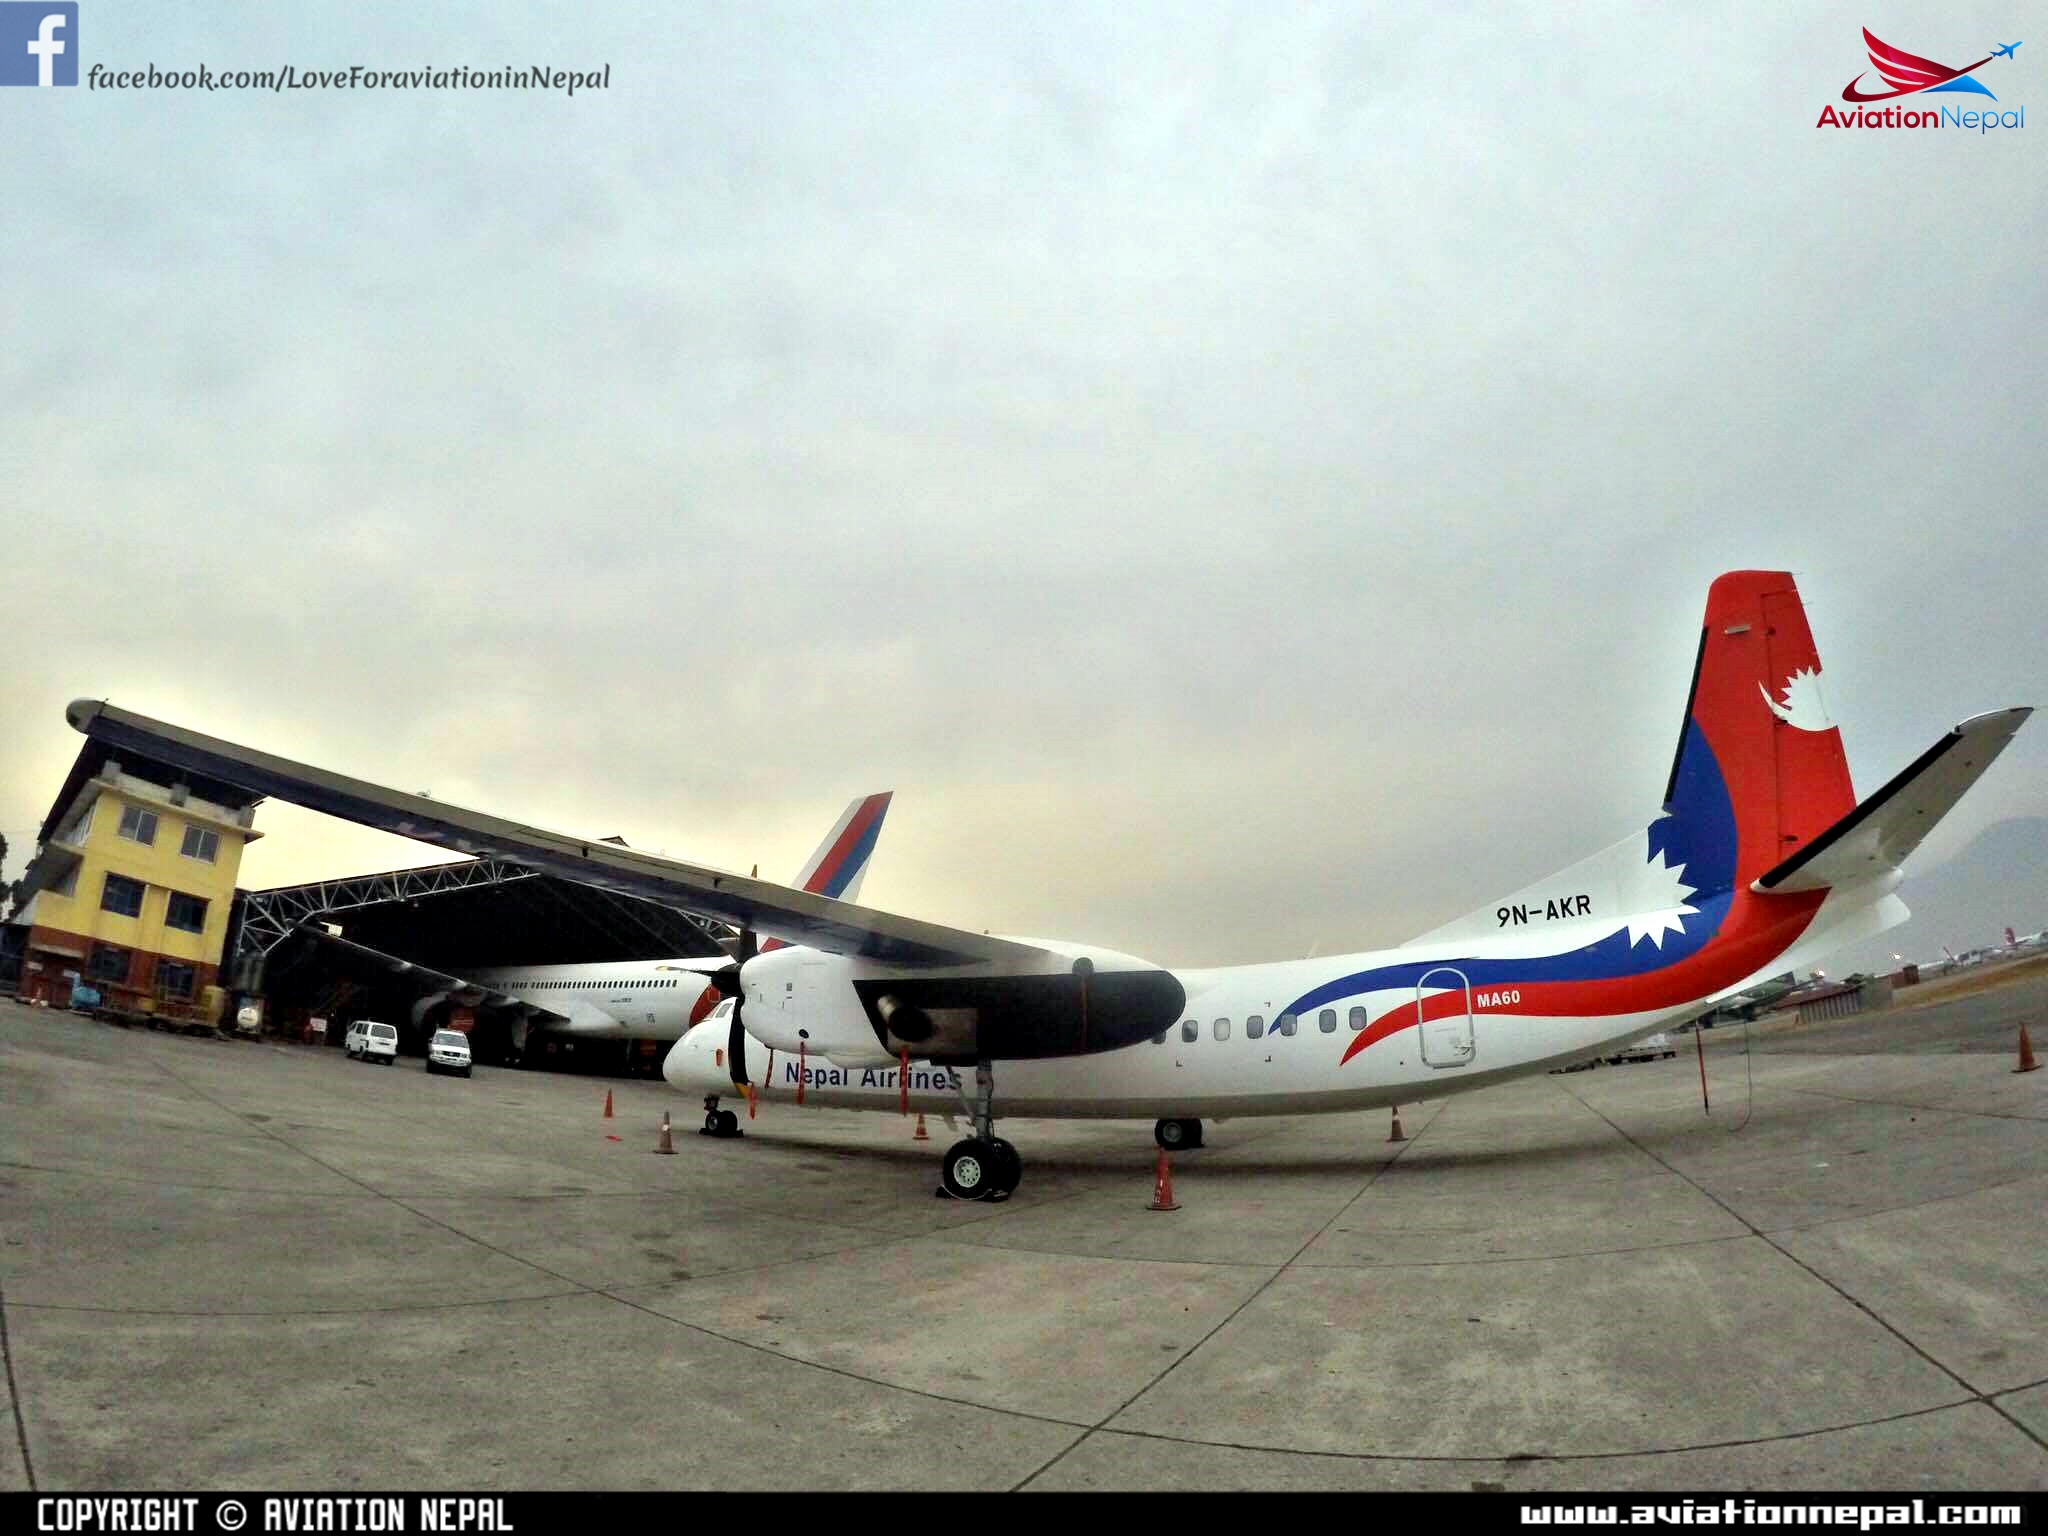 Photo: Factory Made New MA60 '9N-AKR' of Nepal Airlines at Hangar